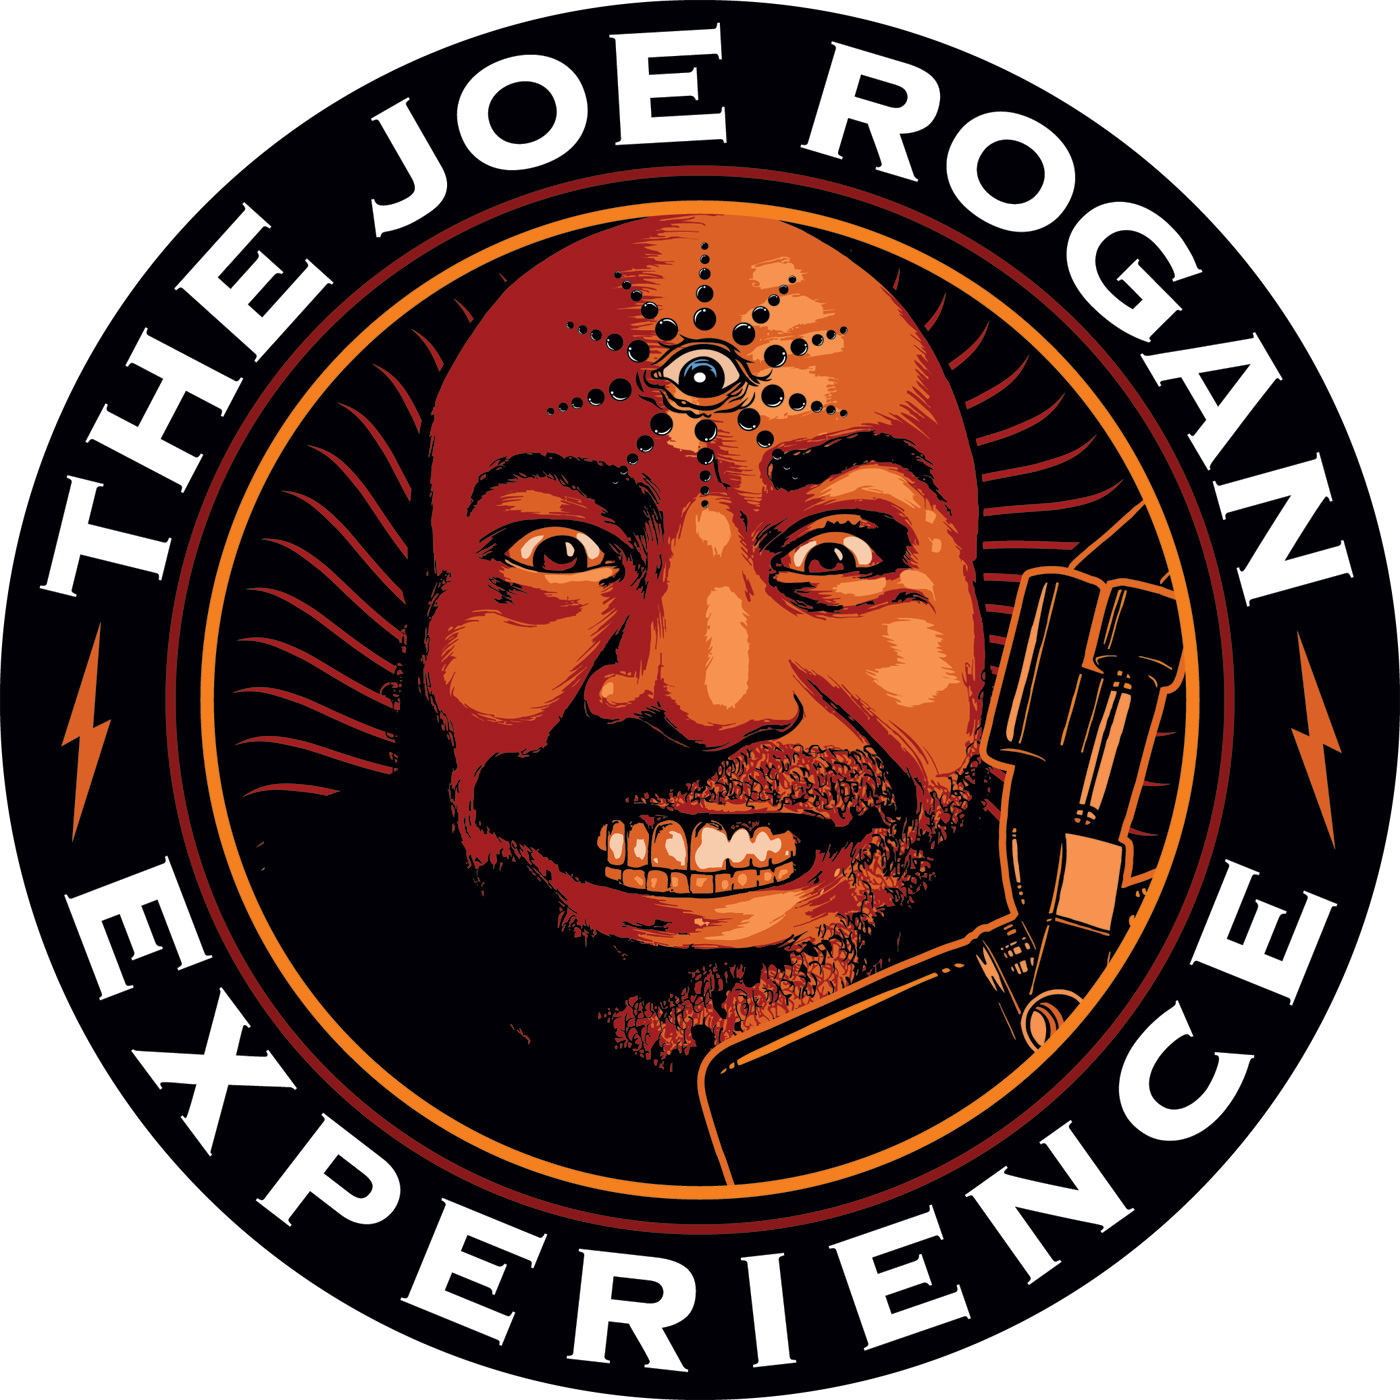 The Joe Rogan Experience PODCAST #66 - Nick Swardson, Brian Redban